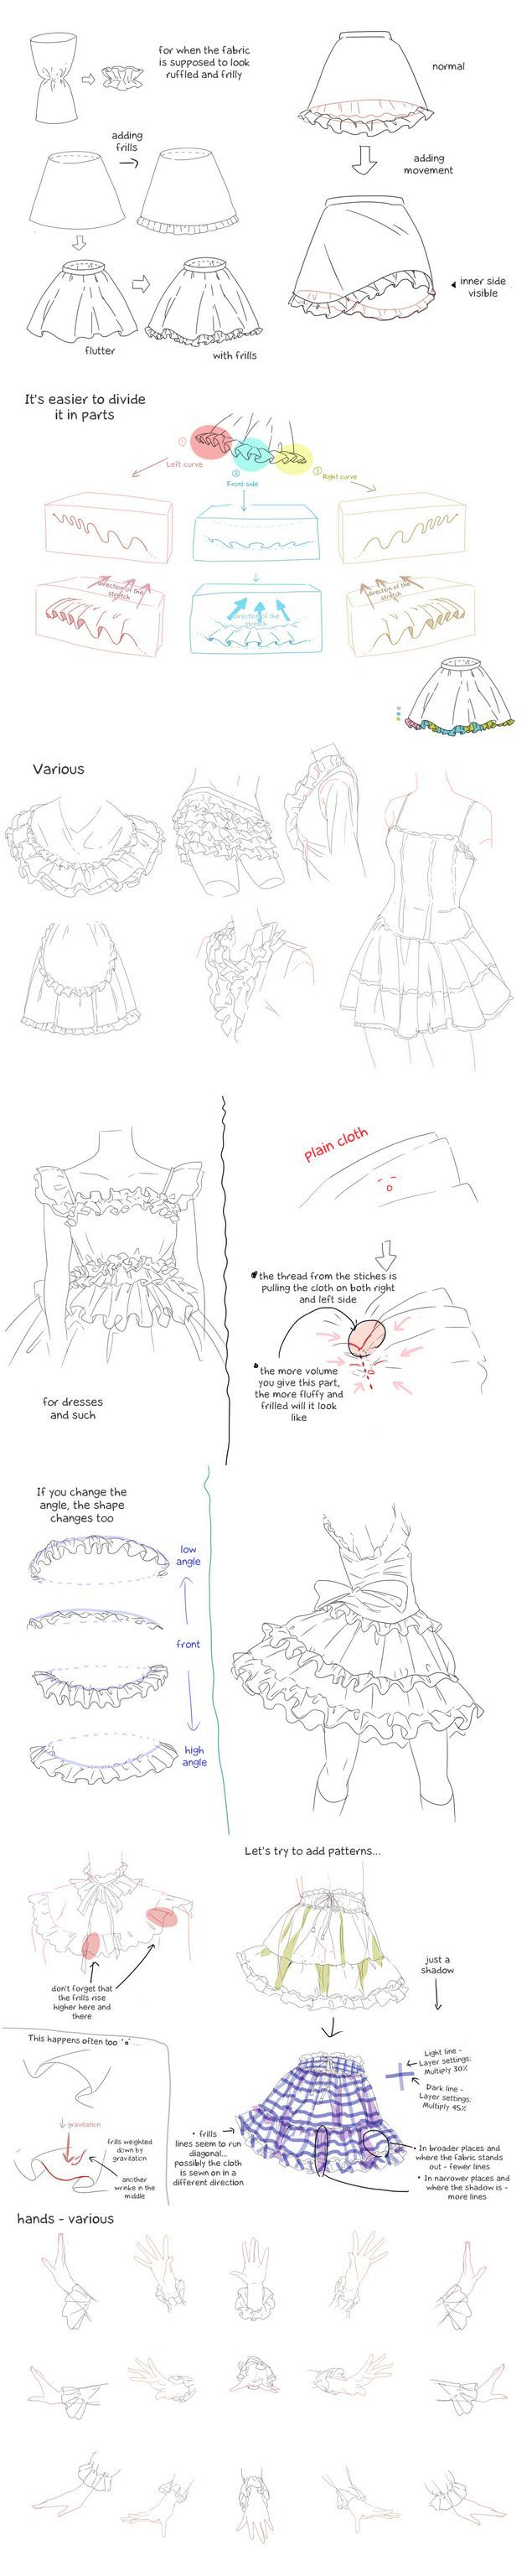 Tutorial on how to draw frilly clothing for your female characters.: